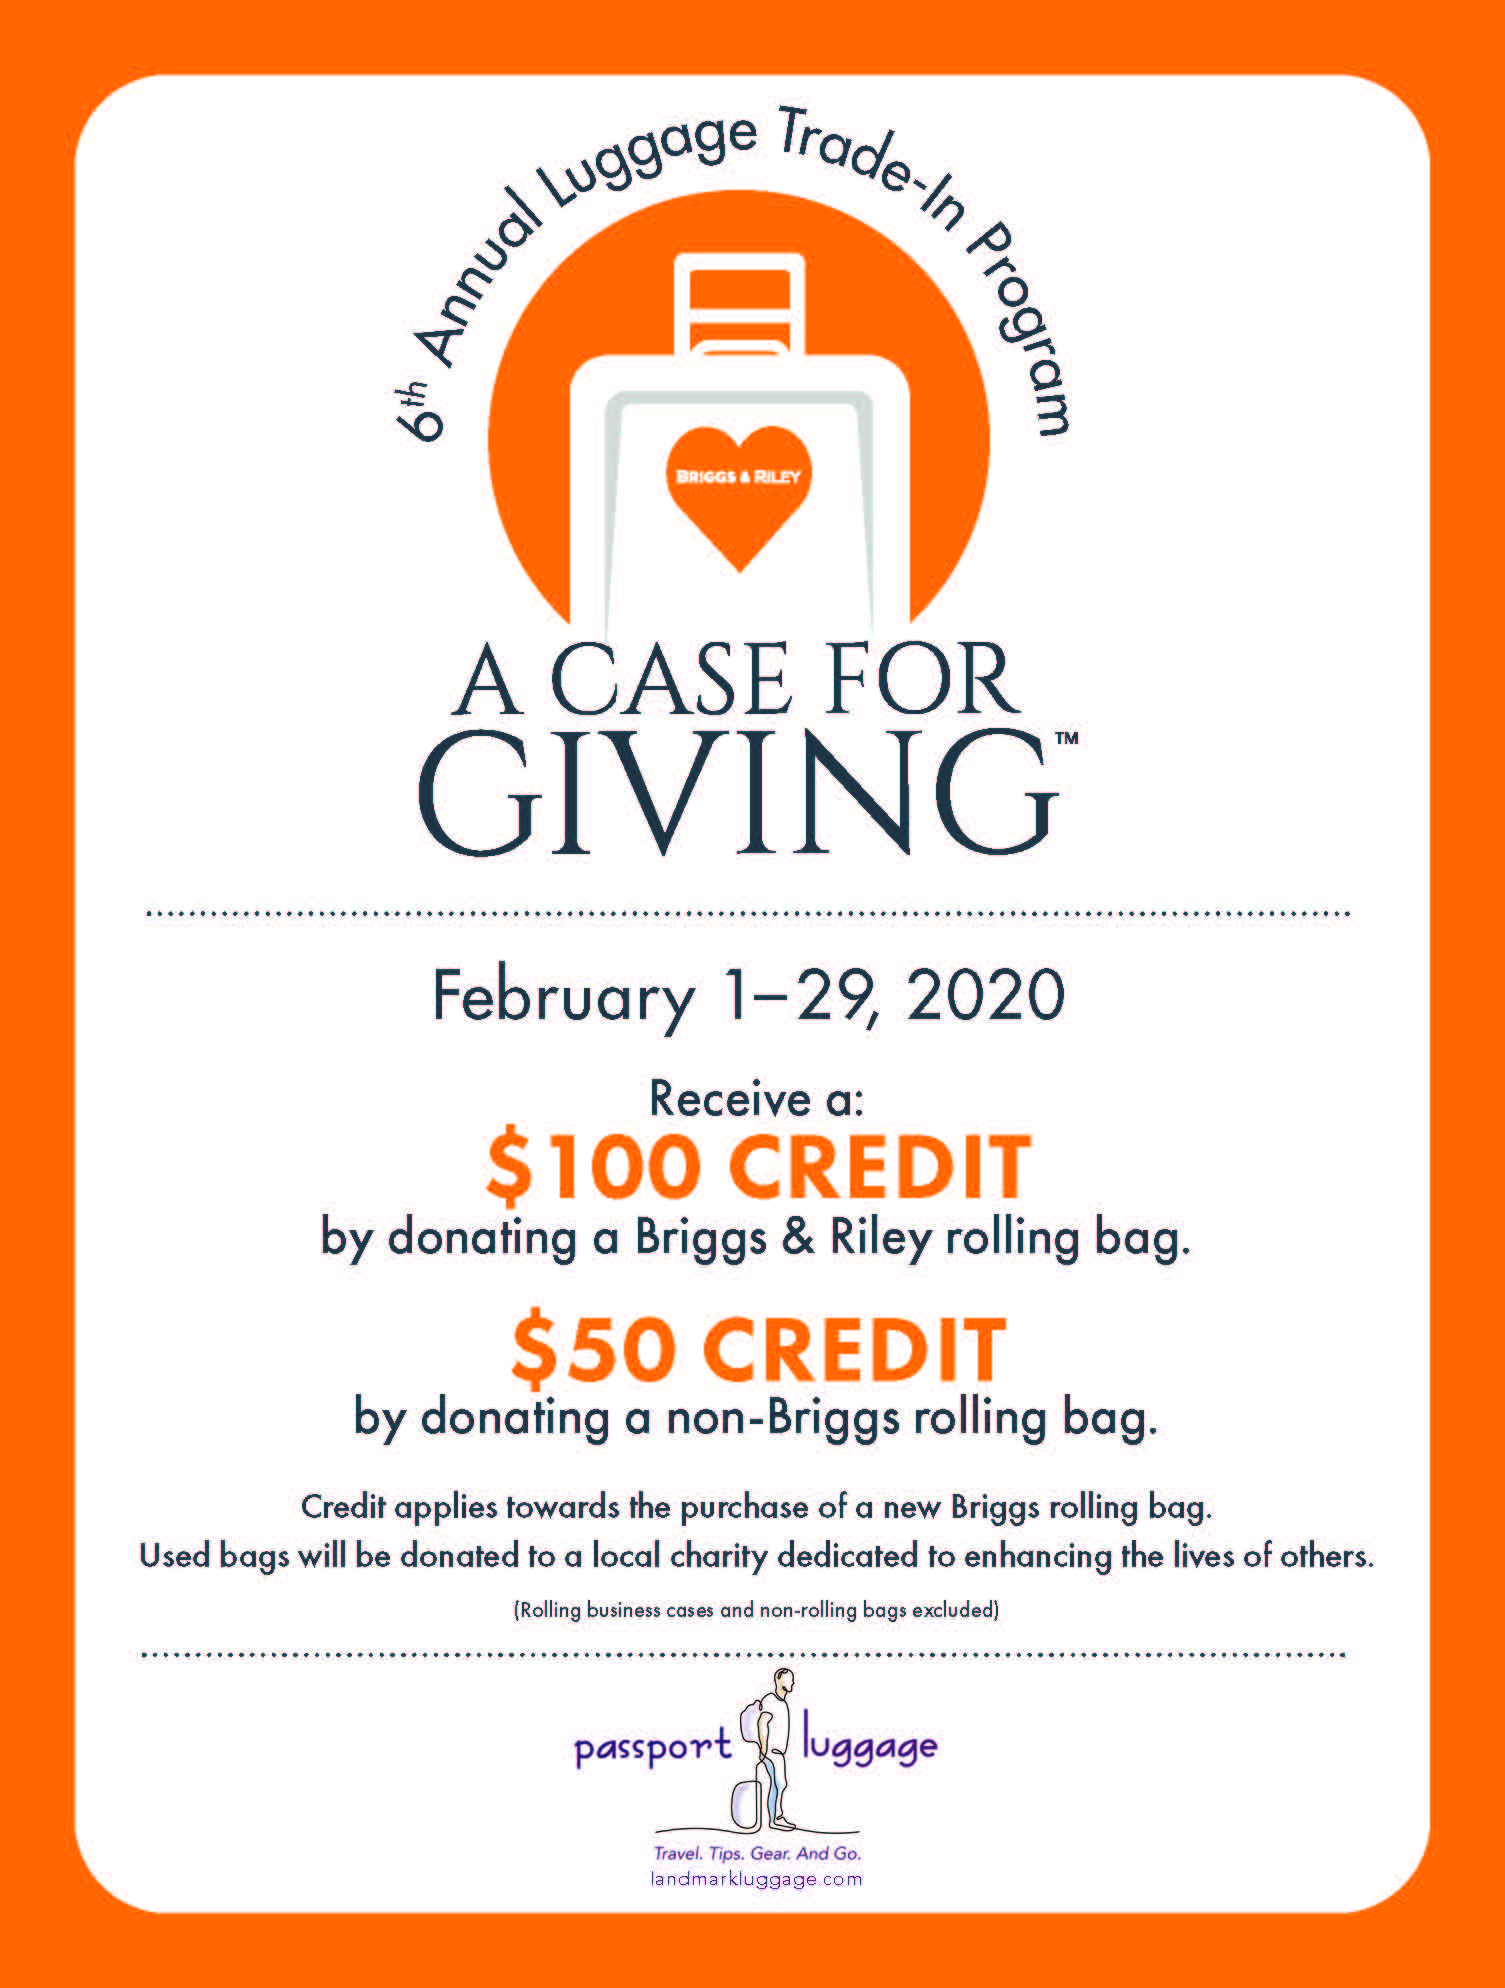 6th Annual Luggage Trade-In Program: A Case for Giving from Passport Luggage